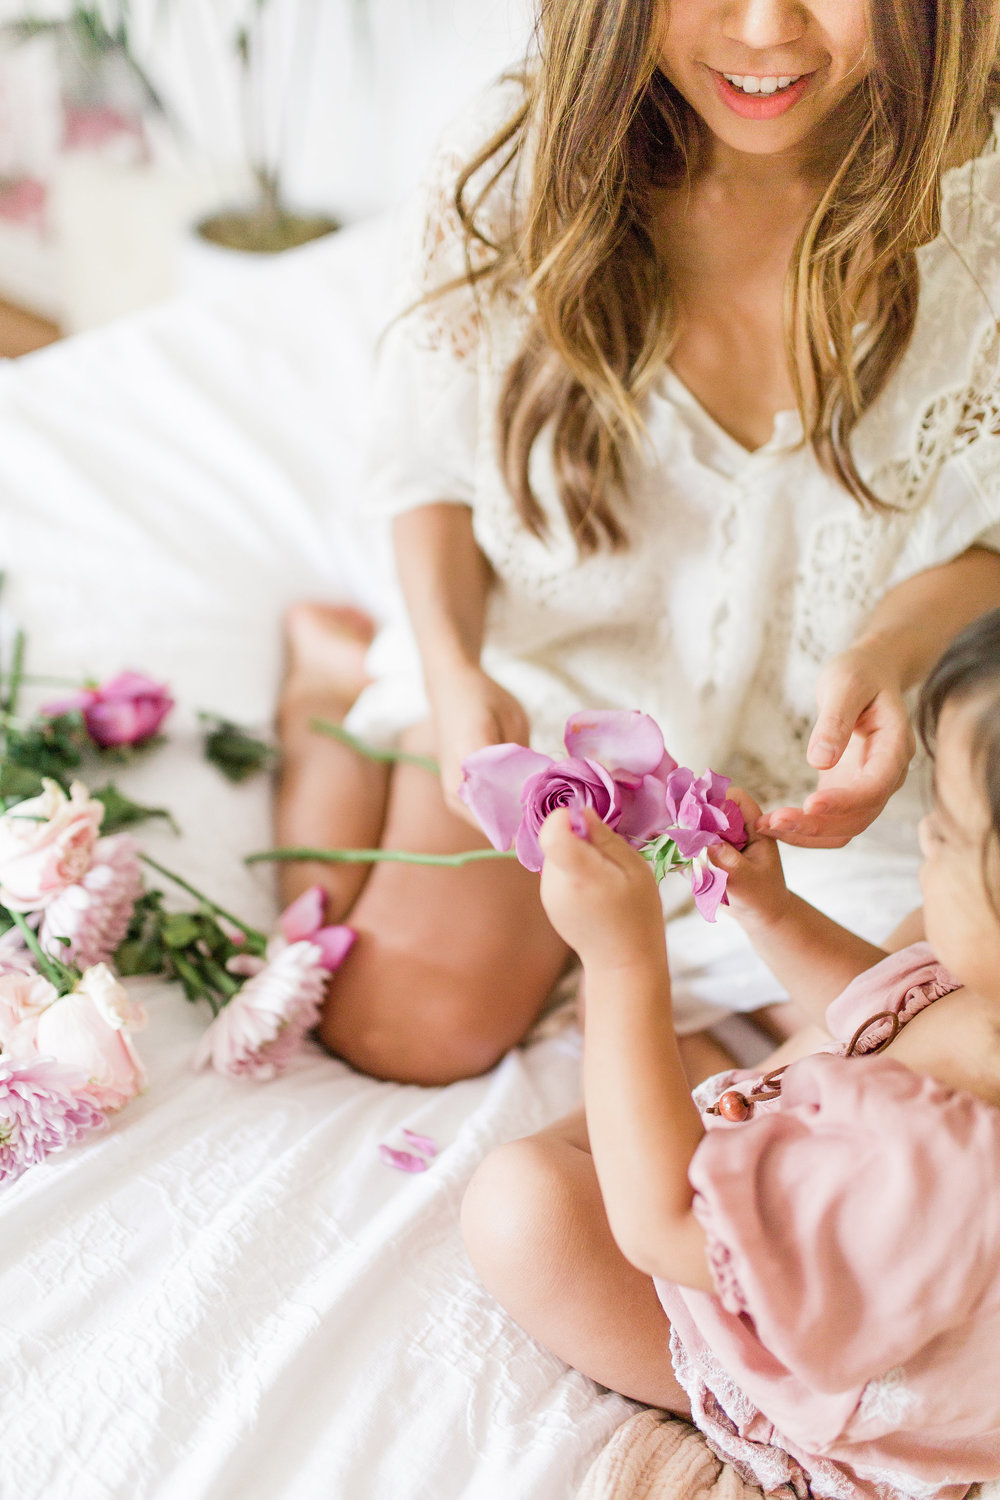 3 ideas on how to bond and connect with your child mommy and me joyfullygreen parenting blog